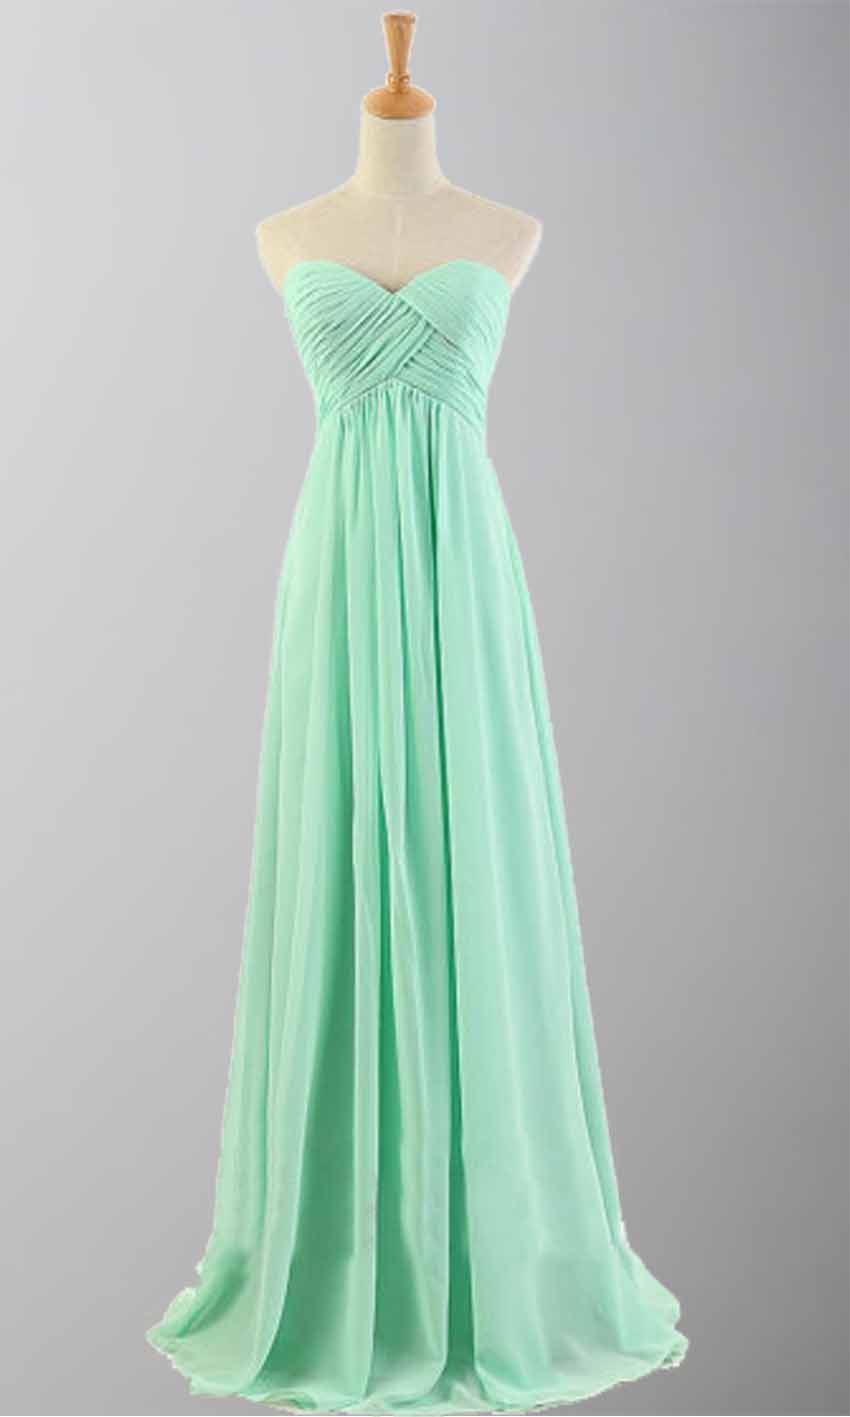 Mint green cross pleated long bridesmaid dresses ksp171 ksp171 mint green cross pleated long bridesmaid dresses ksp171 ksp171 8400 cheap prom dresses uk bridesmaid dresses 2014 prom evening dresses ombrellifo Image collections